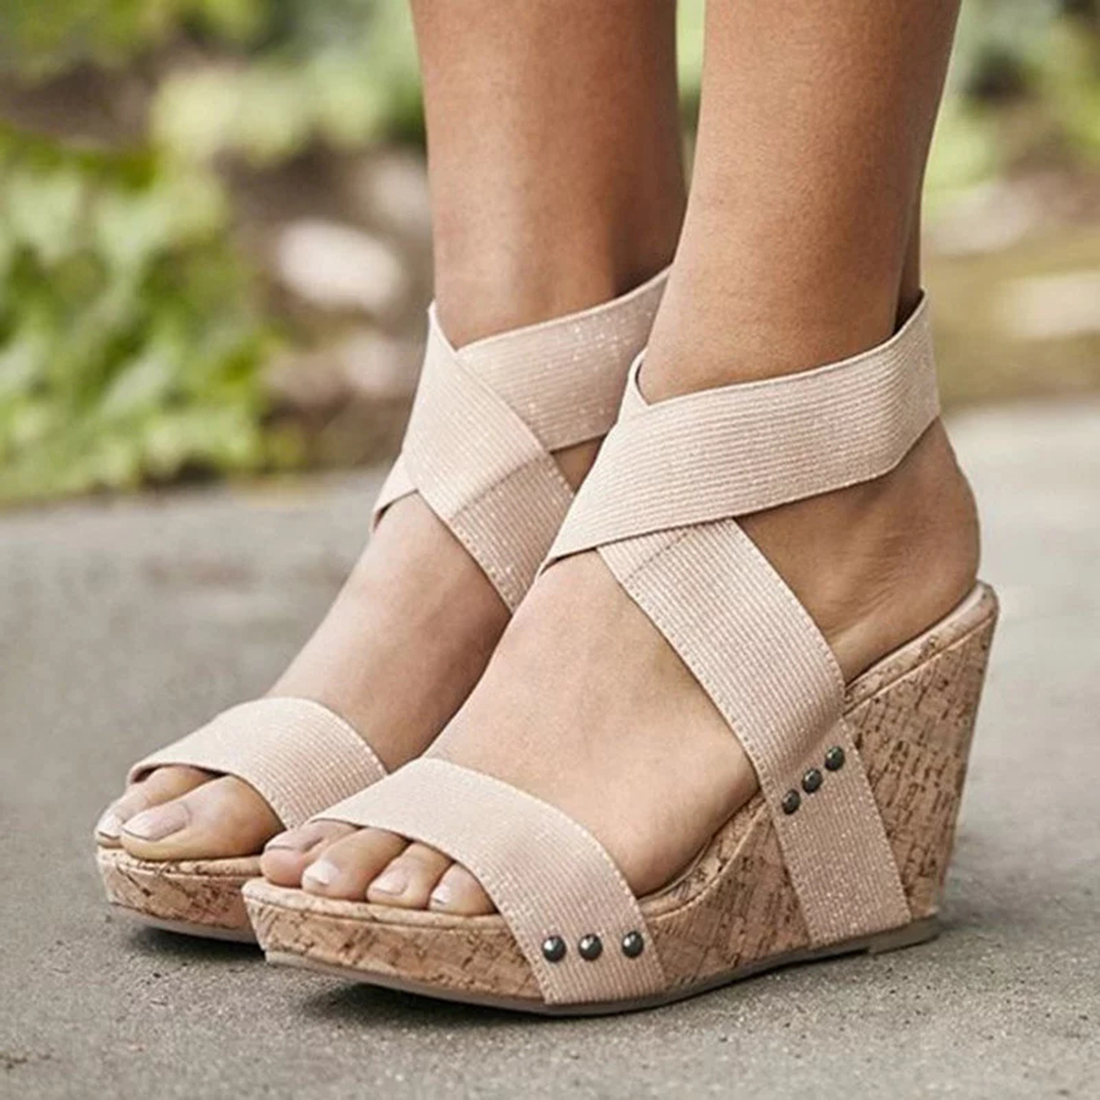 Oeak Wedges Shoes Sandals Espadrilles Super-Heels New-Design Fashion